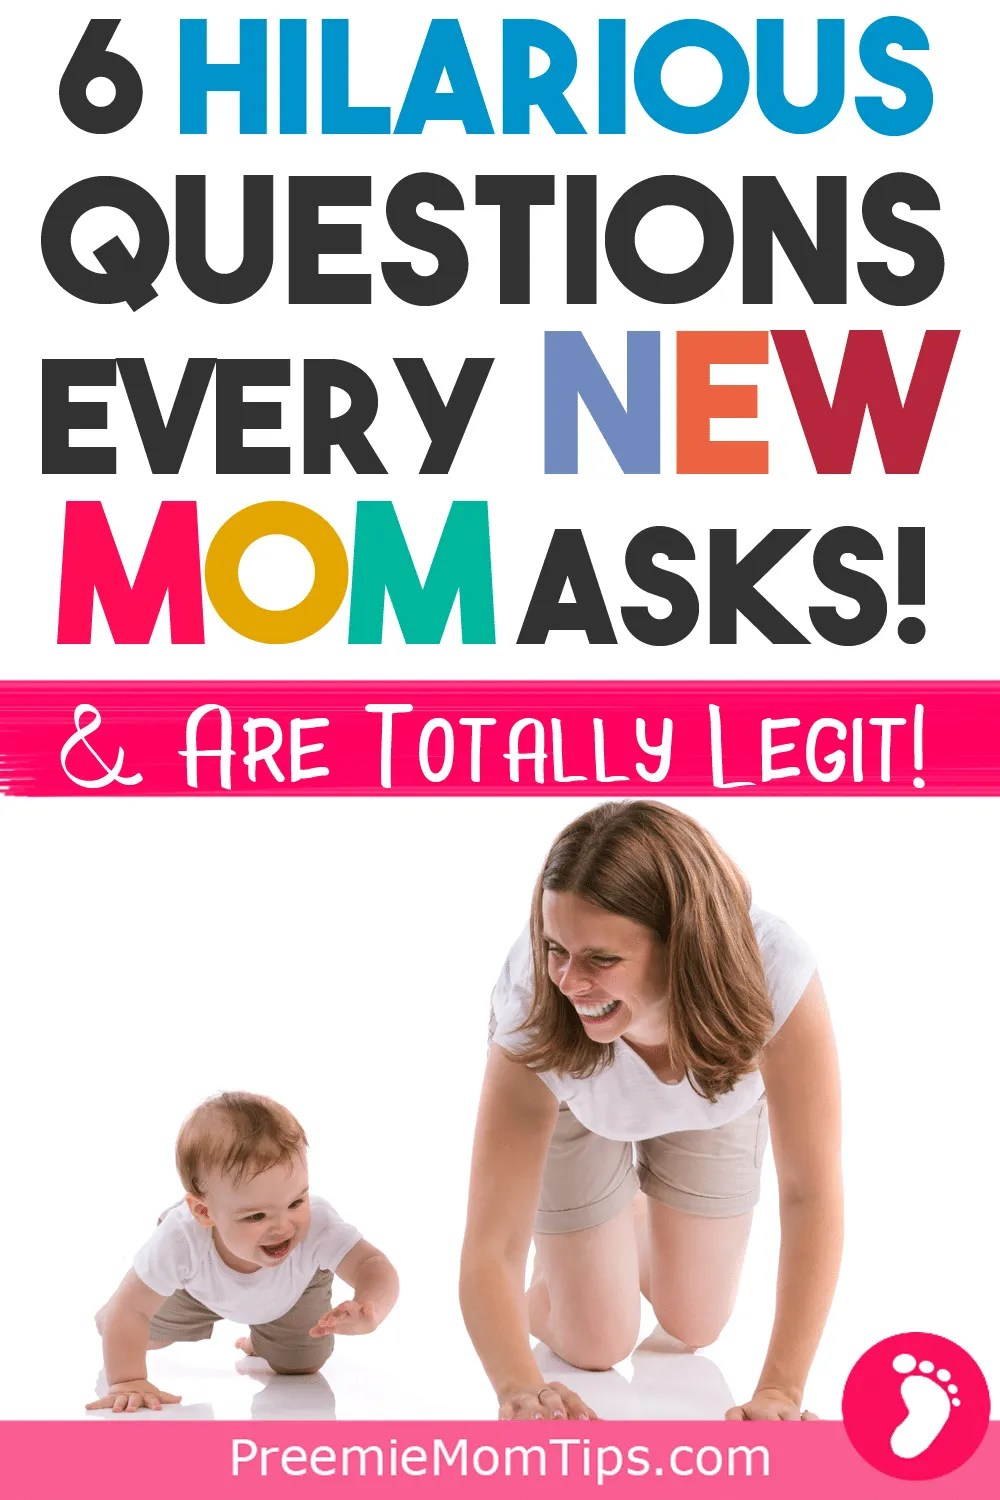 I had all these questions when I was a new mom. When we are pregnant, we don't know how much we don't know. Once our newborn babies are born, a whole new kind of love is also born, and since we want to care the best we can for our babies, we ask ourselves some hilarious (but totally legit) mom questions